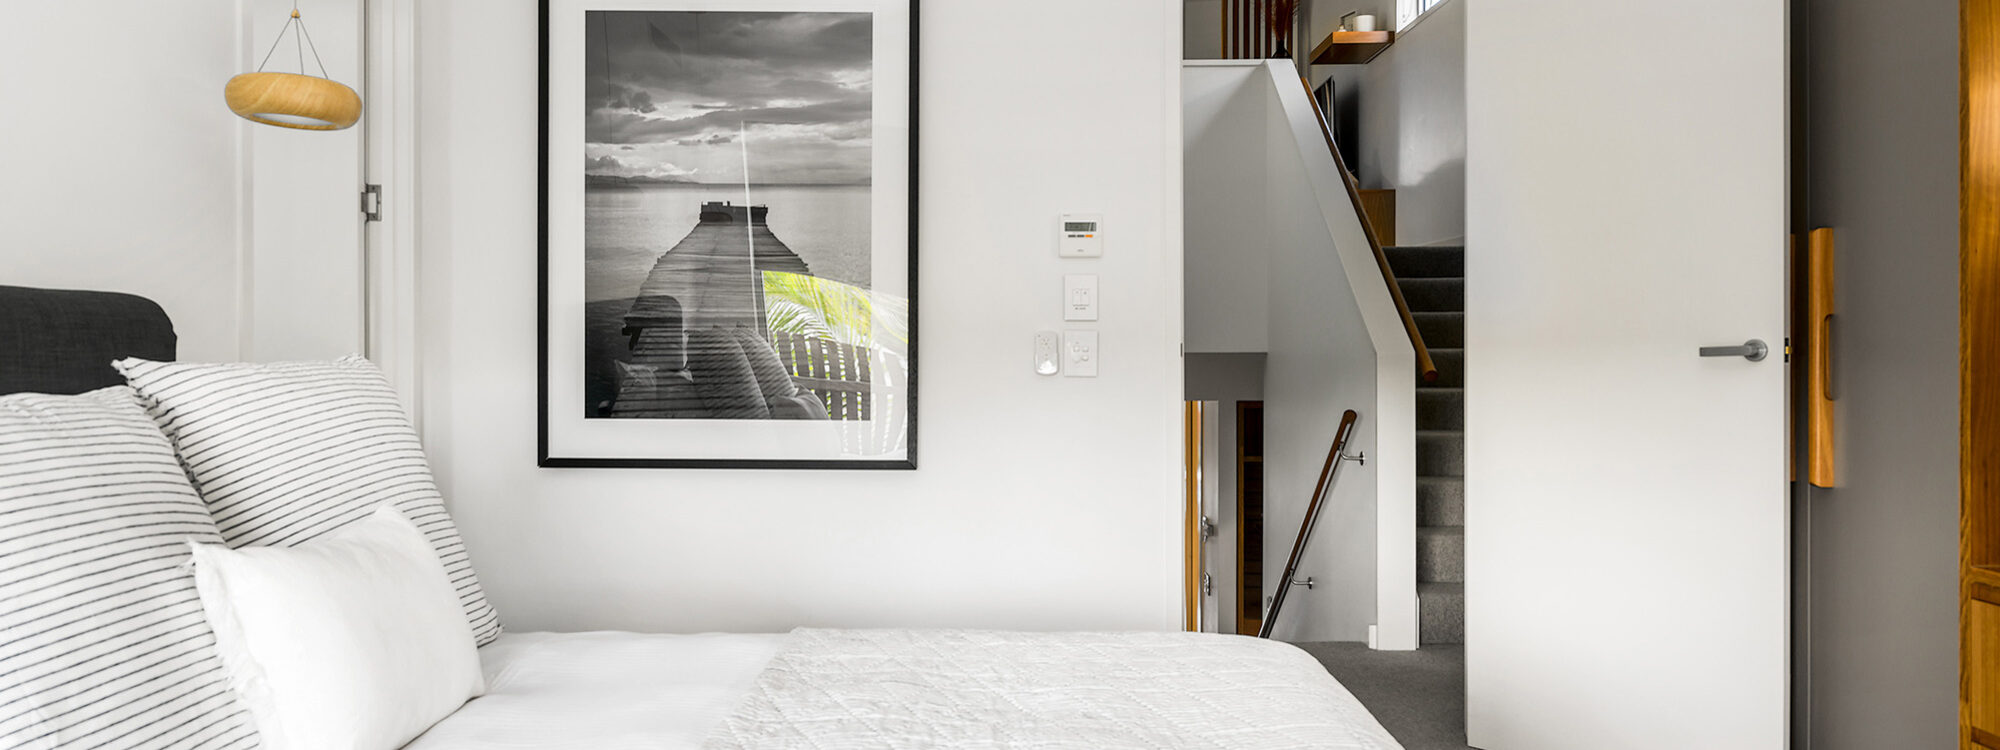 Kokos Beach Houses - Byron Bay - Master bedroom on Landing f